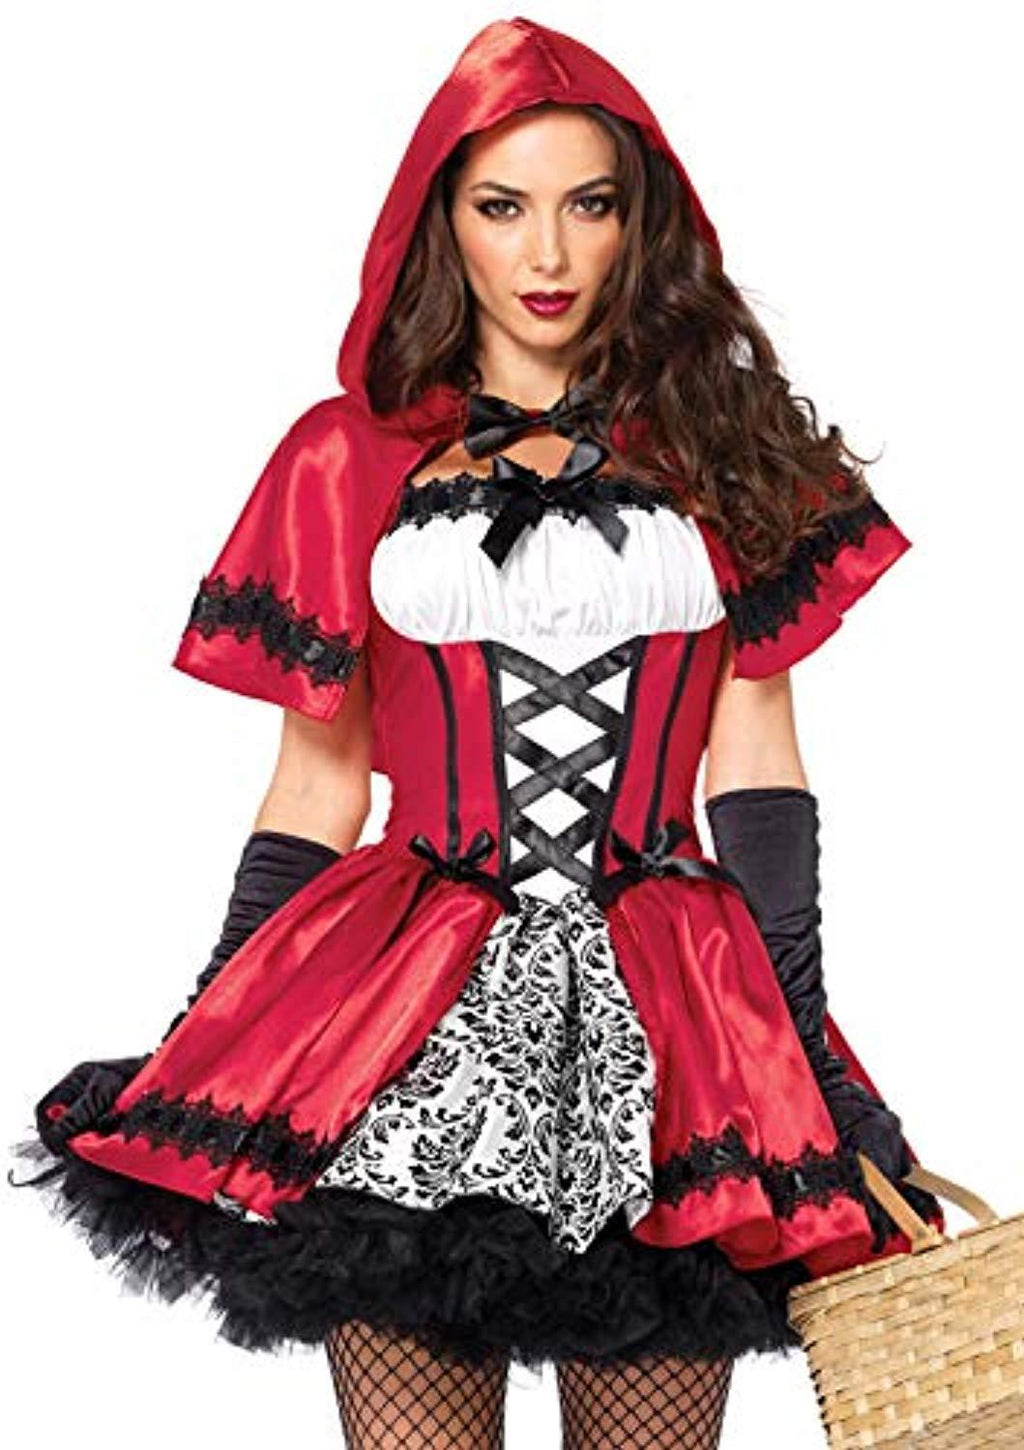 Women's Little Red Riding Hood Costume|Halloween Costumes For Women|Adult Halloween Costumes